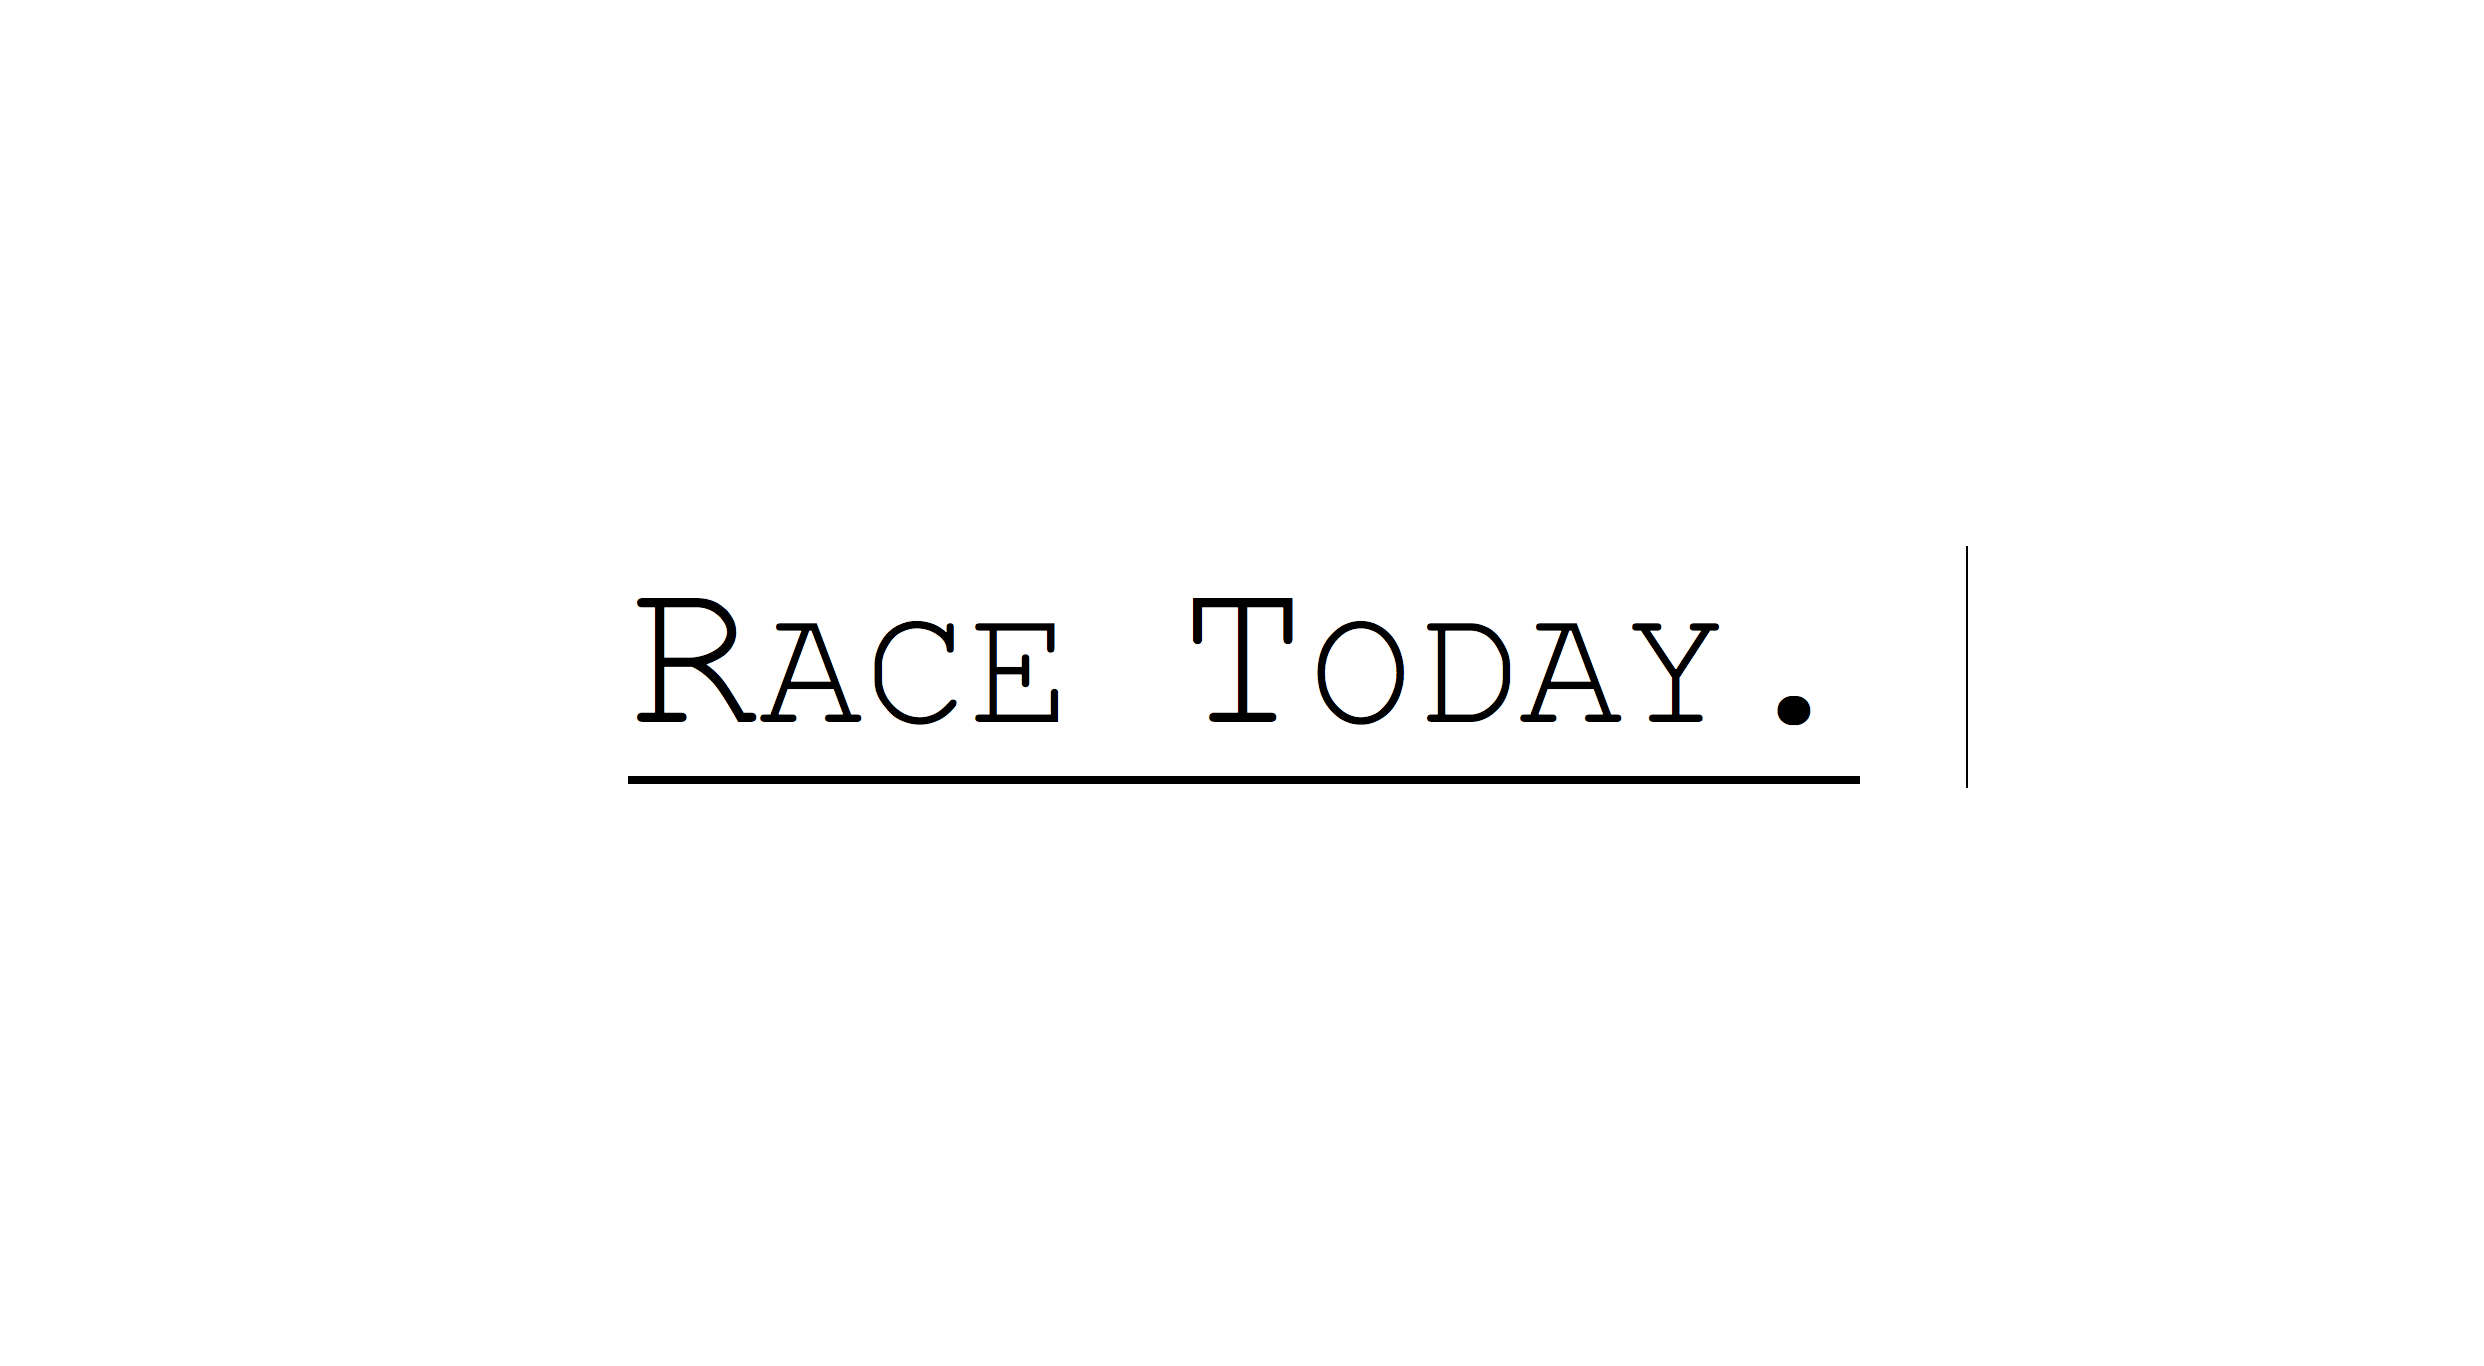 RACE TODAY 2019 -